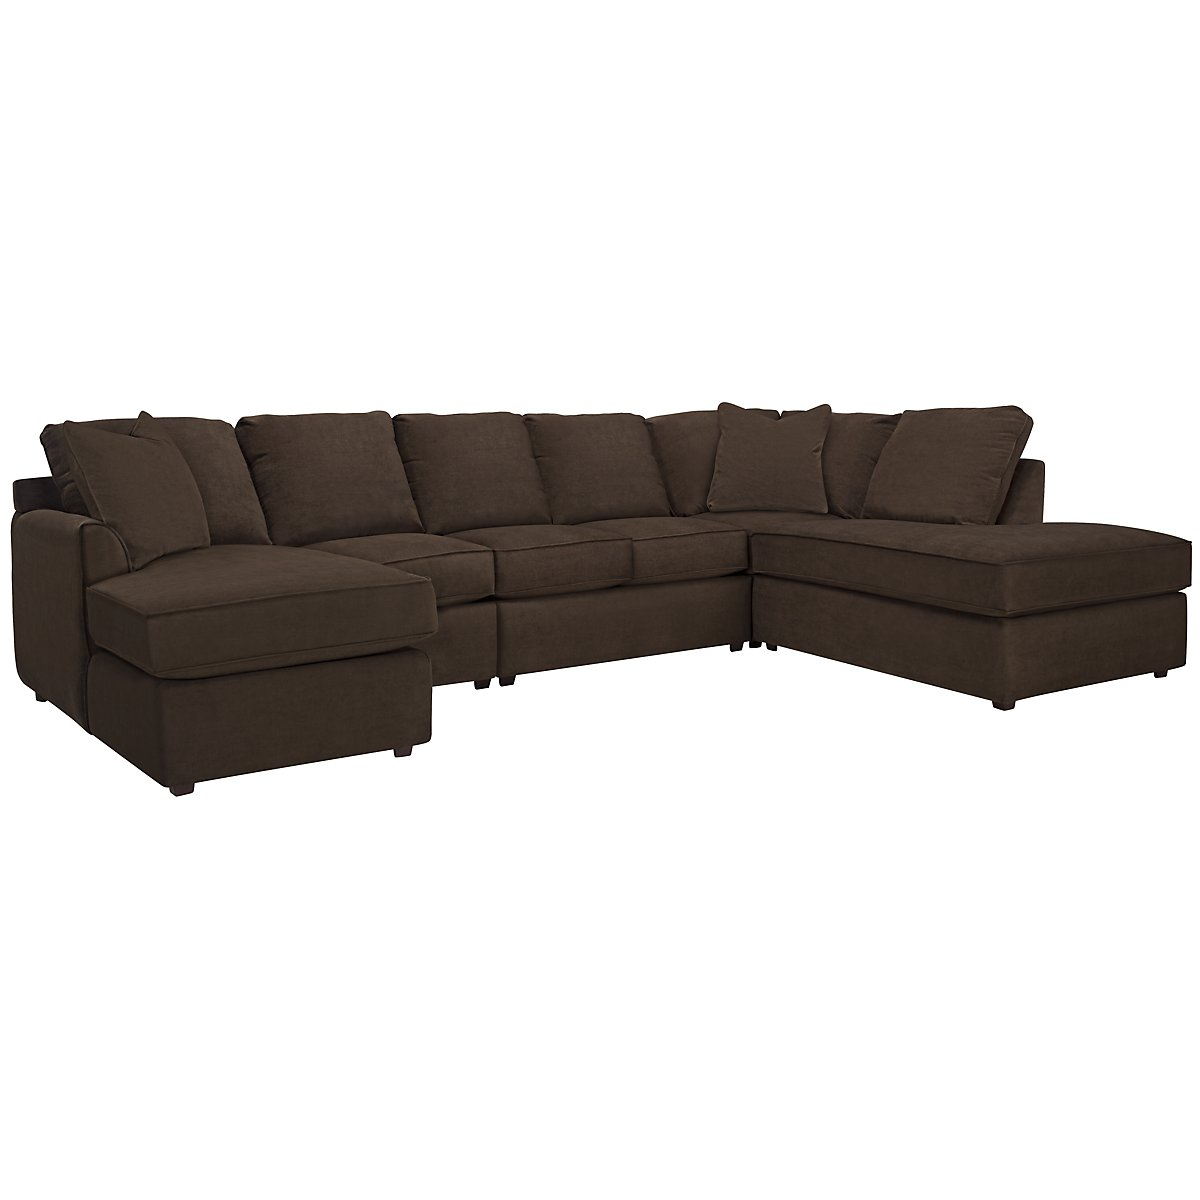 Express3 Dark Brown Microfiber Large Right Bumper Sectional